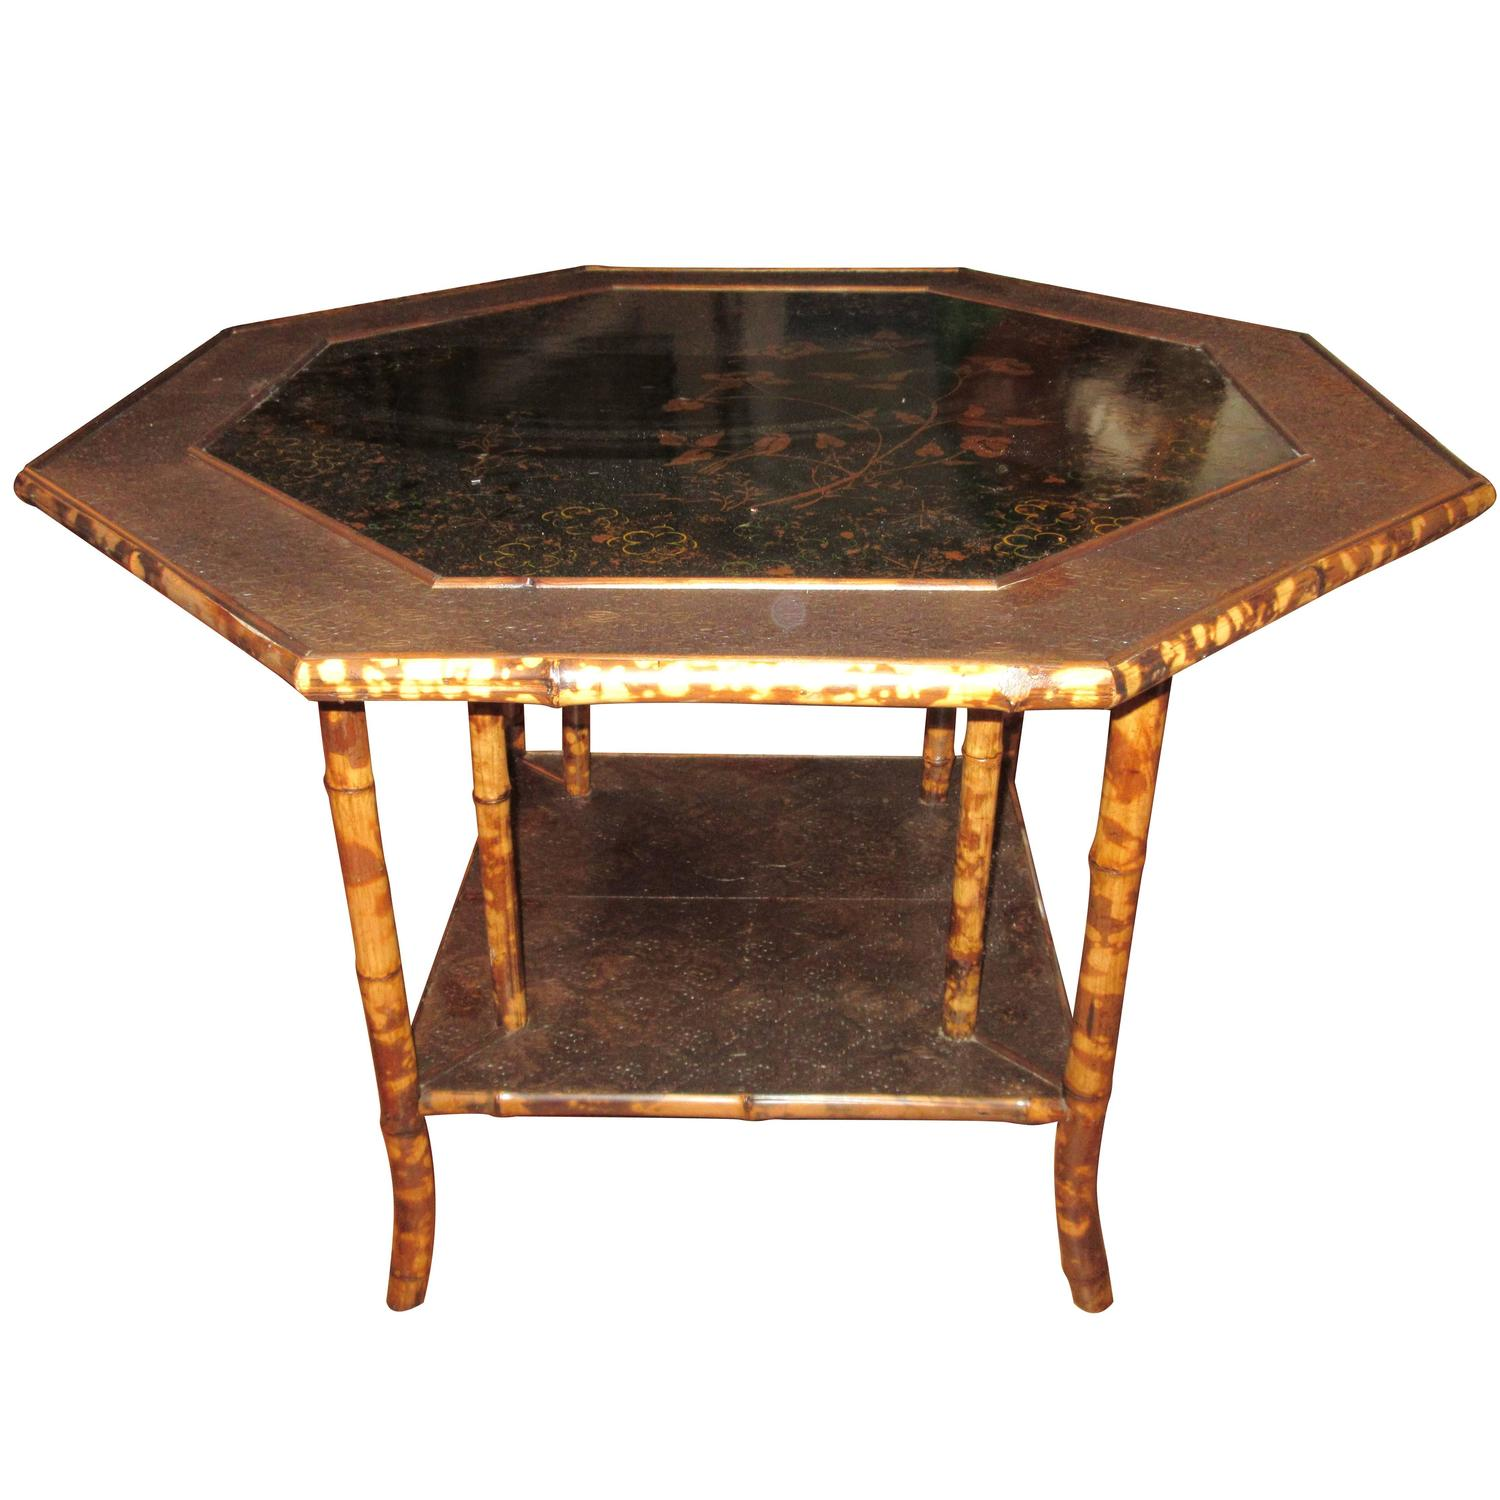 Magnificent late 19th century faux tortoiseshell and for Table th center